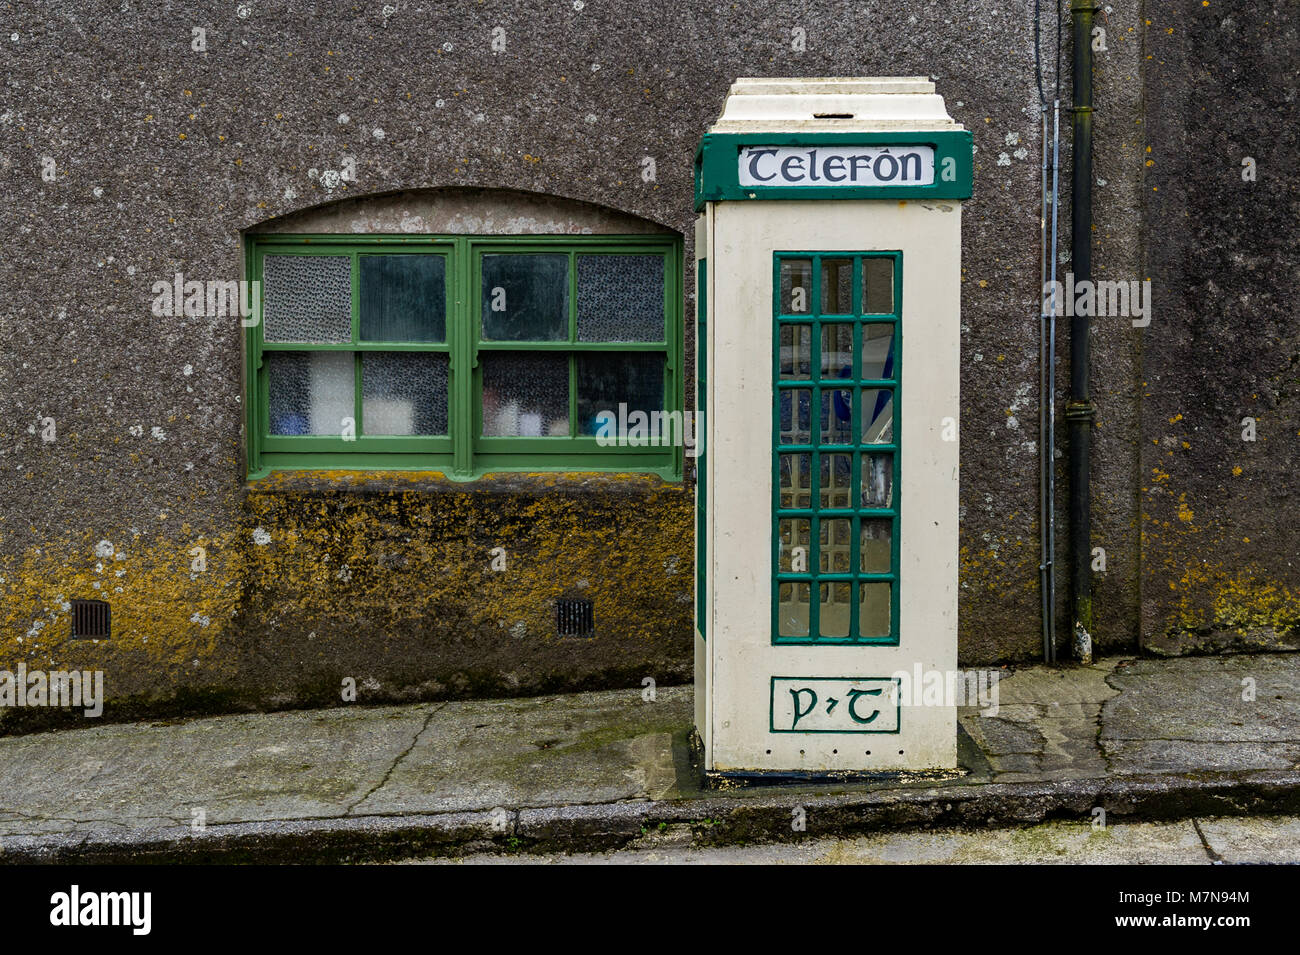 Old style Irish public telephone box telefon box in Castletownshend Village, West Cork, Ireland. - Stock Image